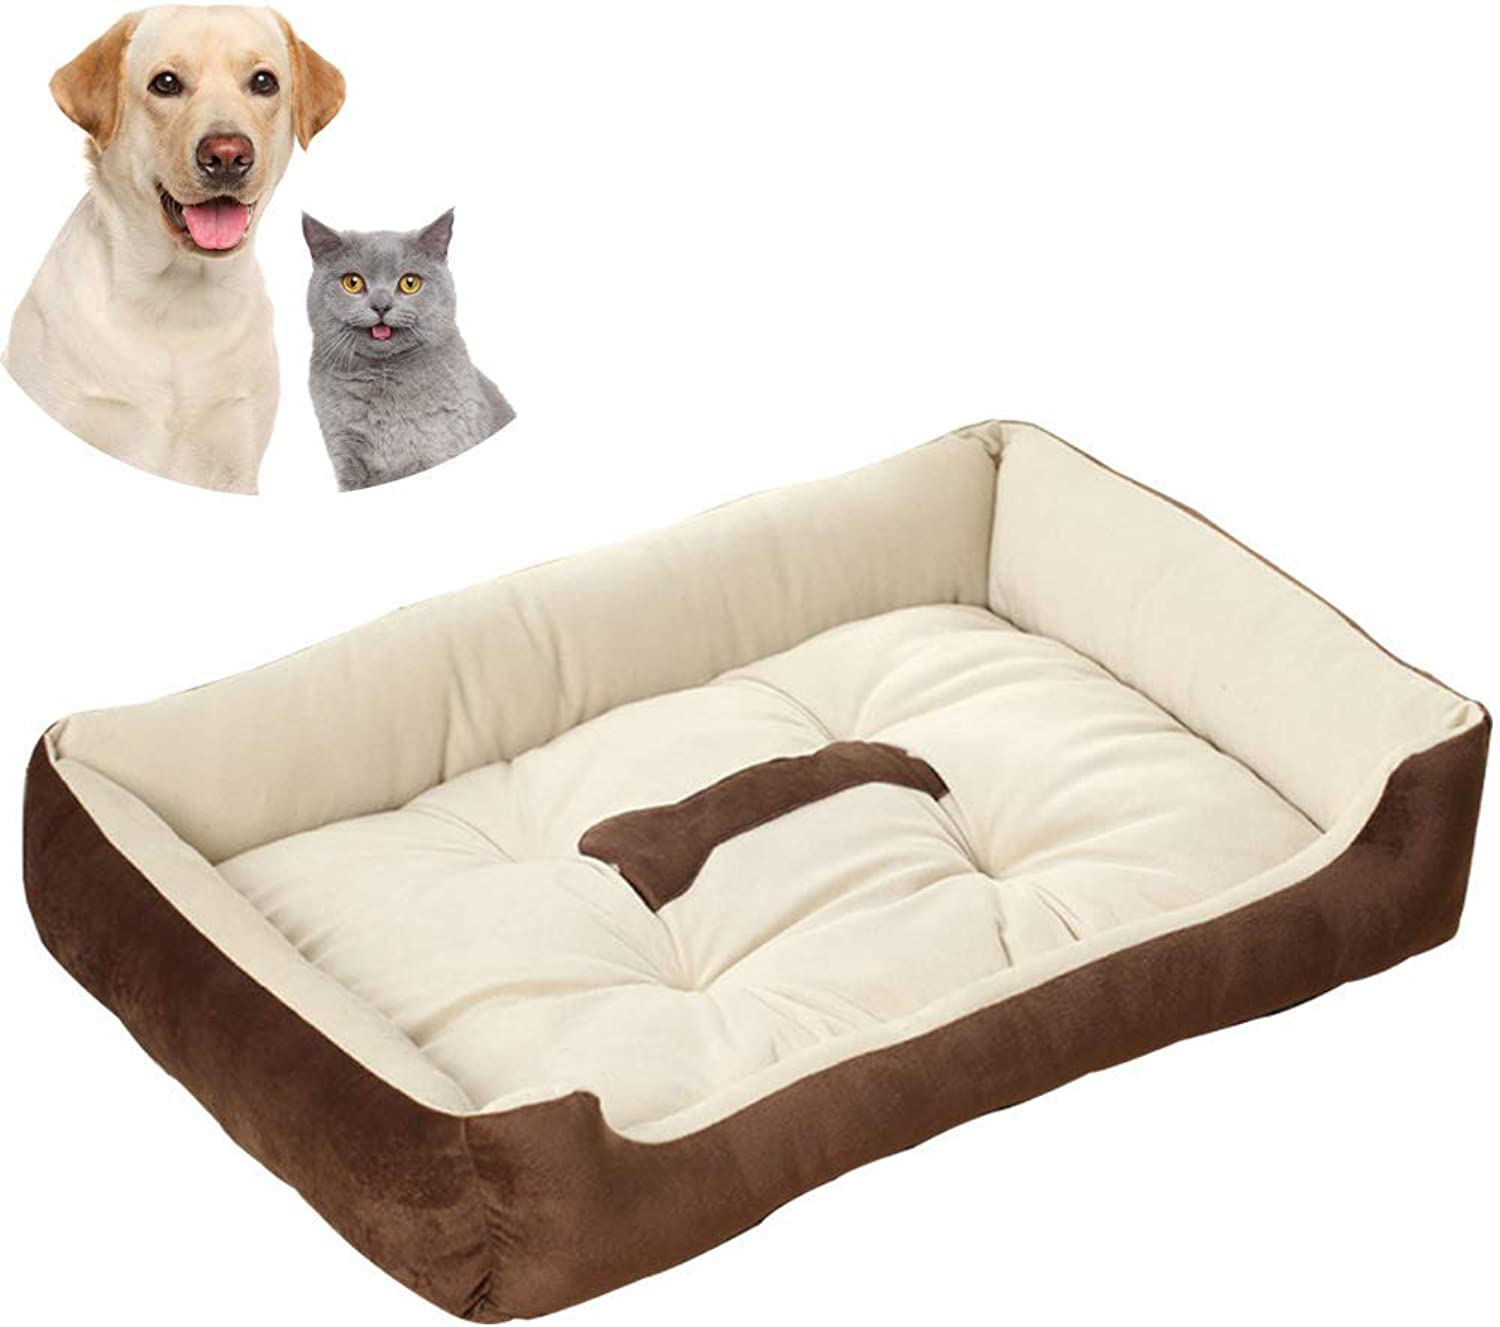 Dog Bed Washable, Cat Bed Pet Bed 60  45 cm Small Pet Bed Mattress Pillow Cushion Soft Warm Prime Cotton Bed with Cute Bone Image(S)